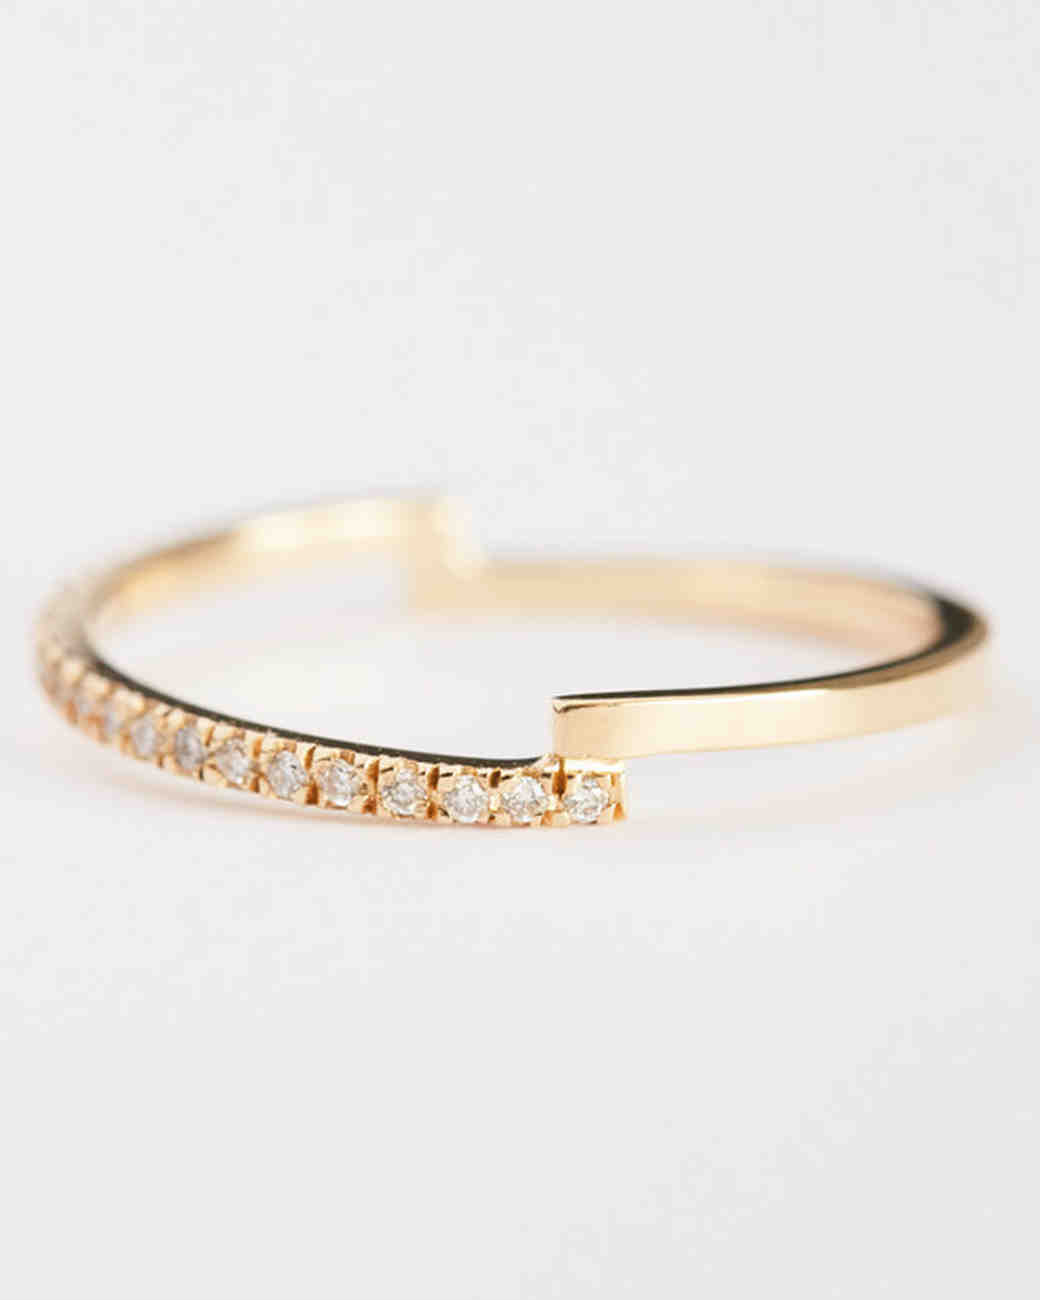 The Prettiest Delicate Wedding Bands For Modern Brides Martha Stewart Weddings: Wedding Bands For The Bride At Reisefeber.org